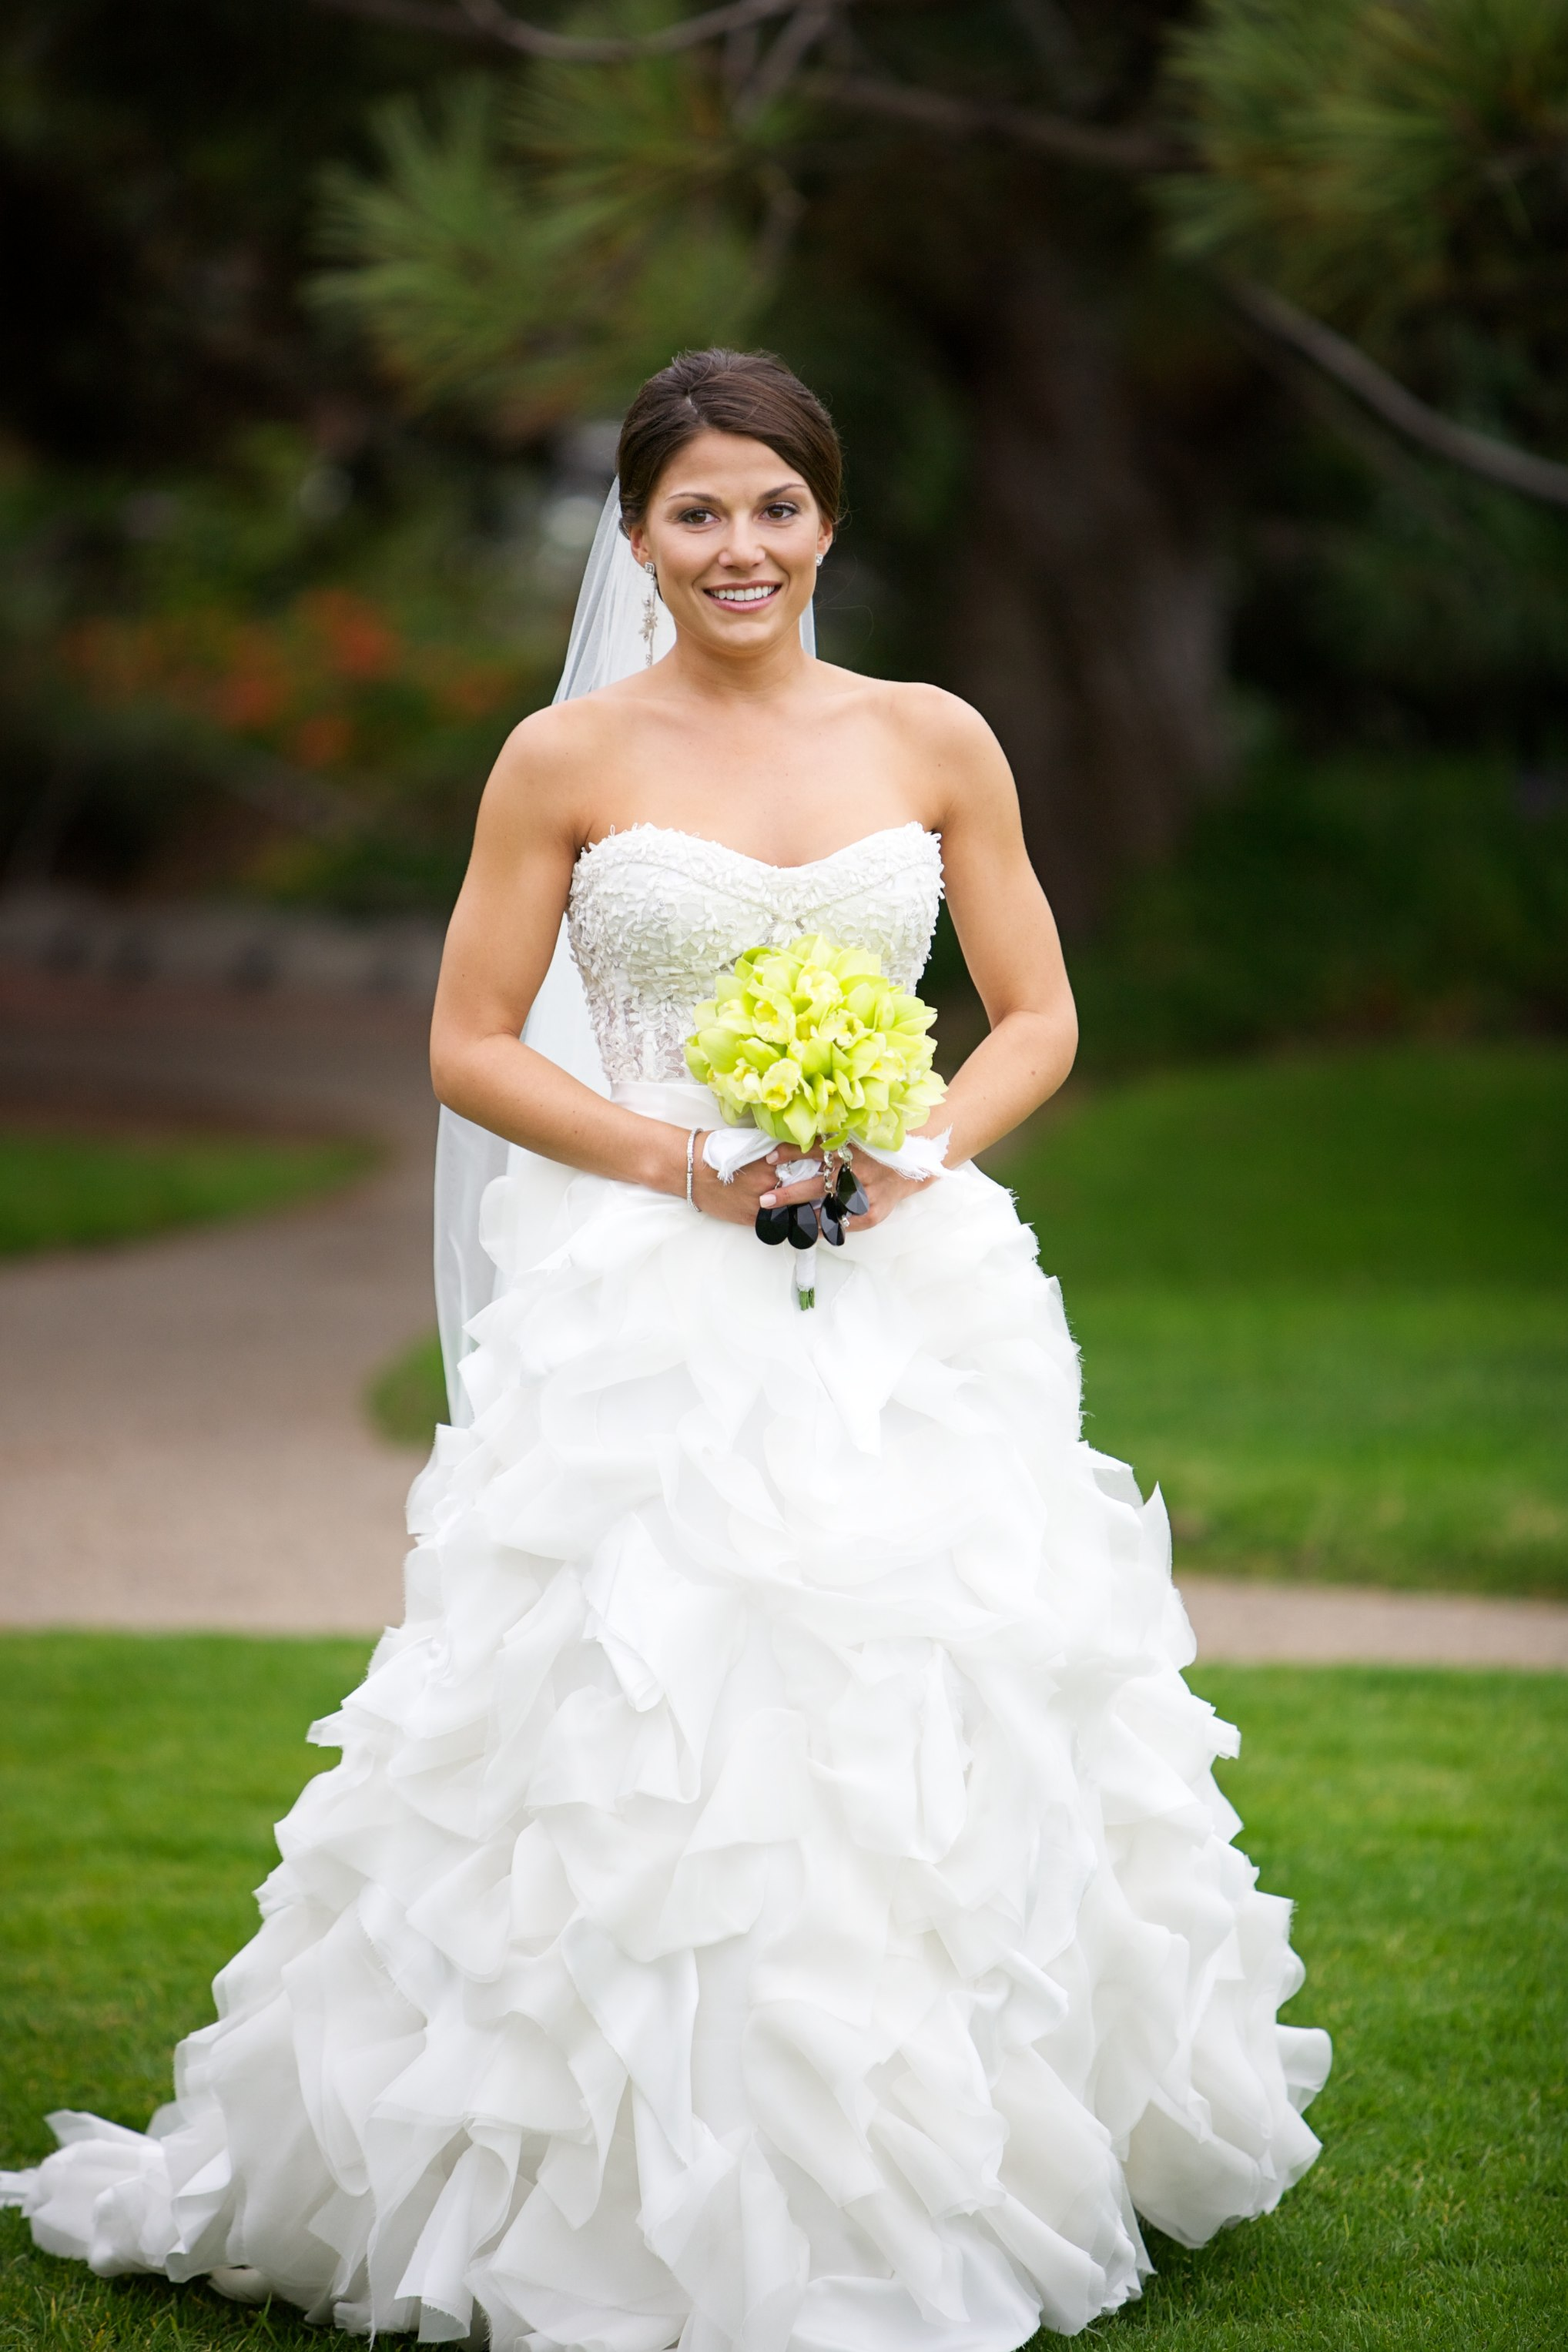 Beautiful Bride Photos From 21